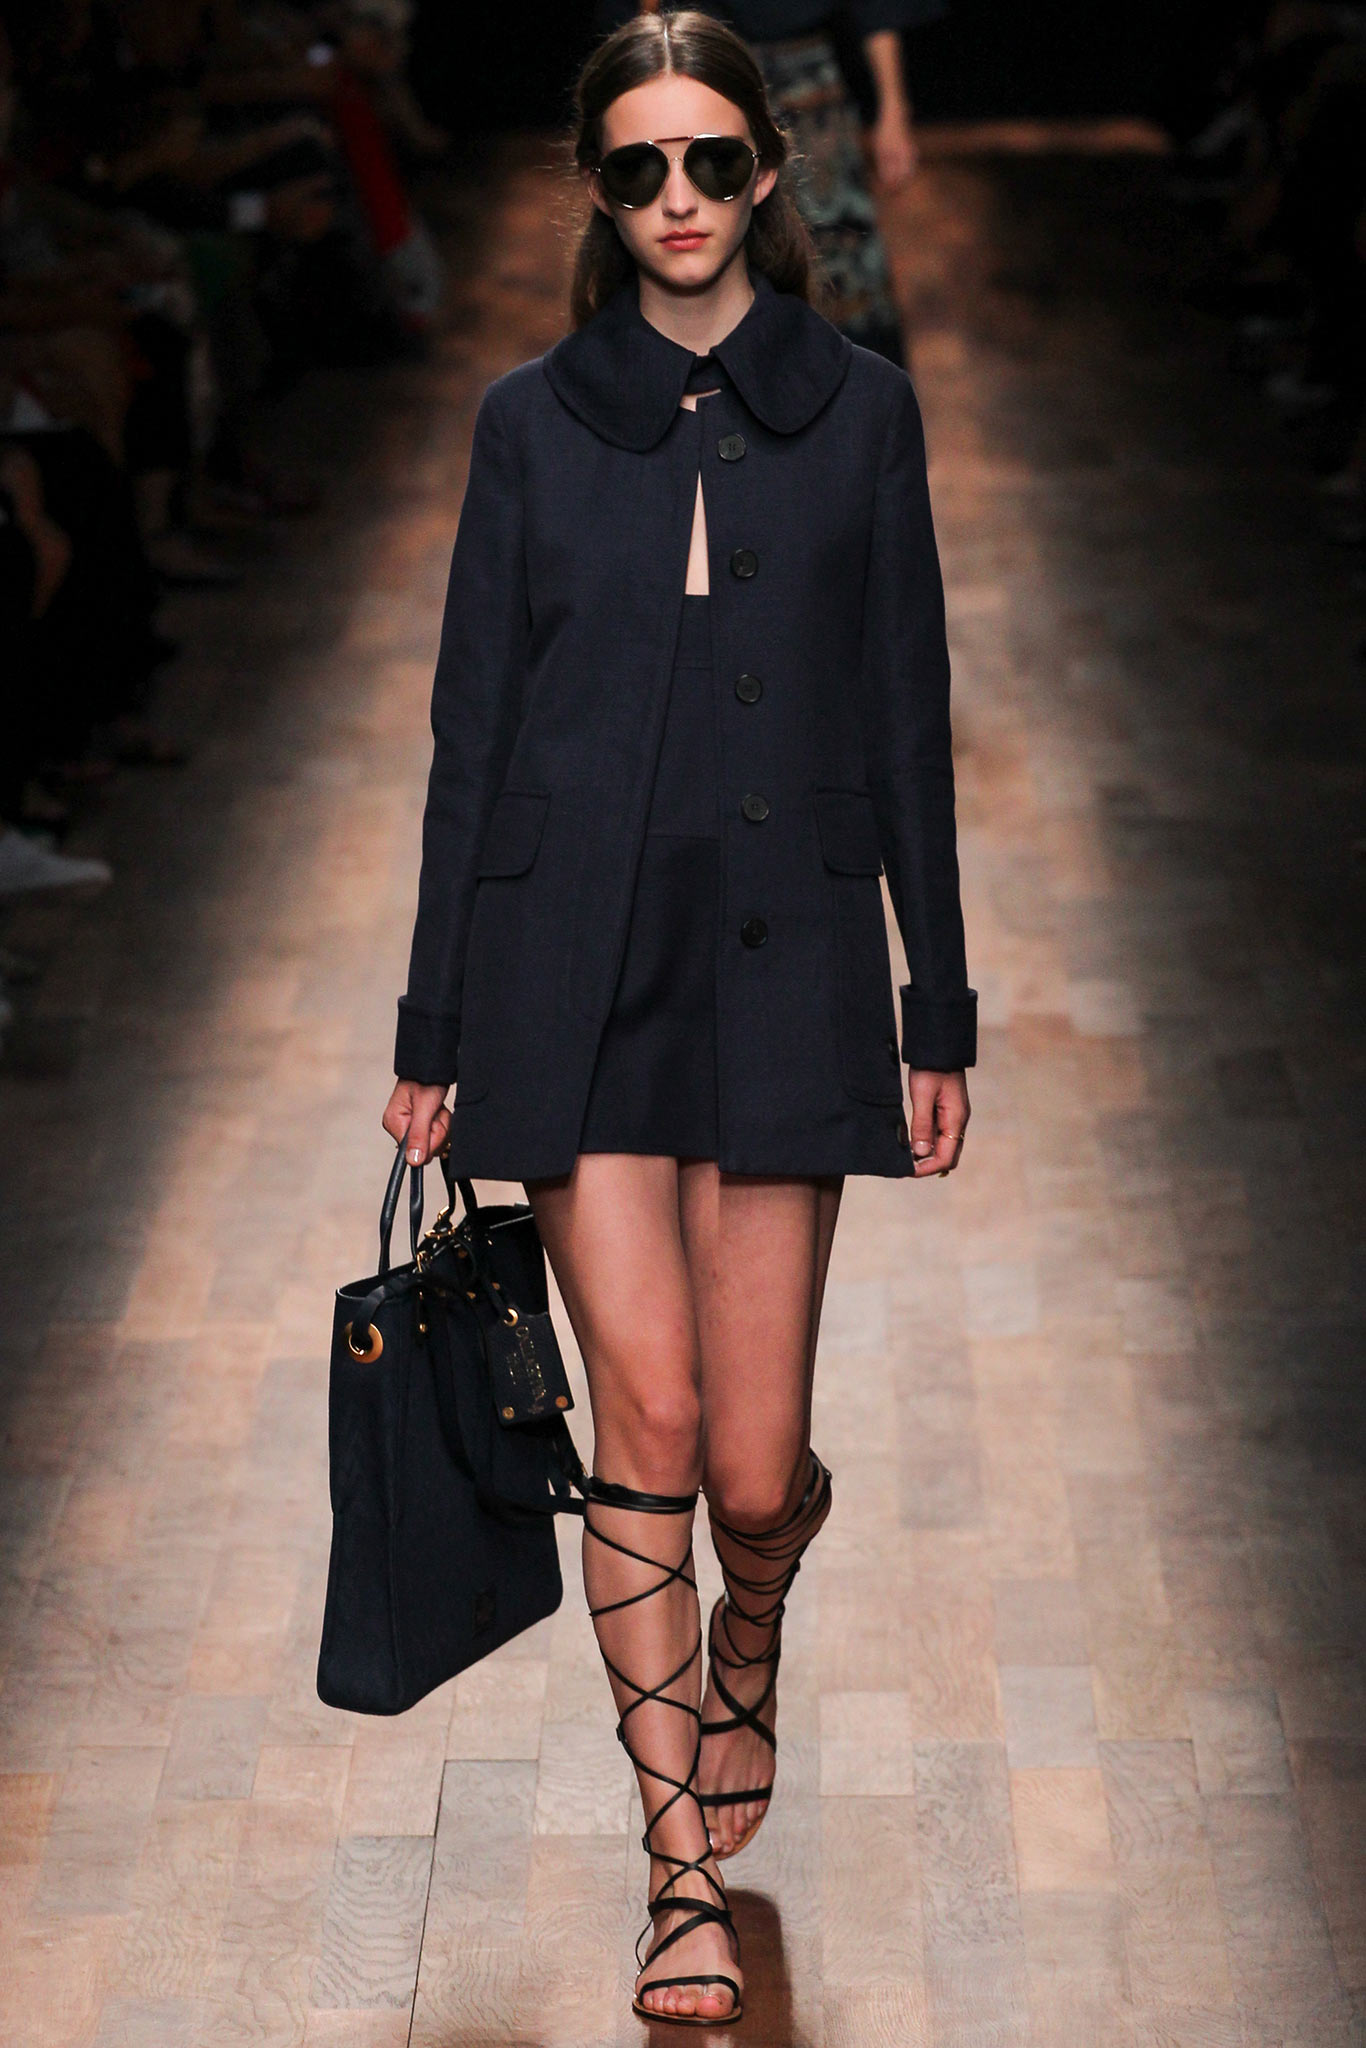 Valentino Spring 2015 RTW Look 2 | Favorite Spring 2015 RTW Runway Looks Part 2